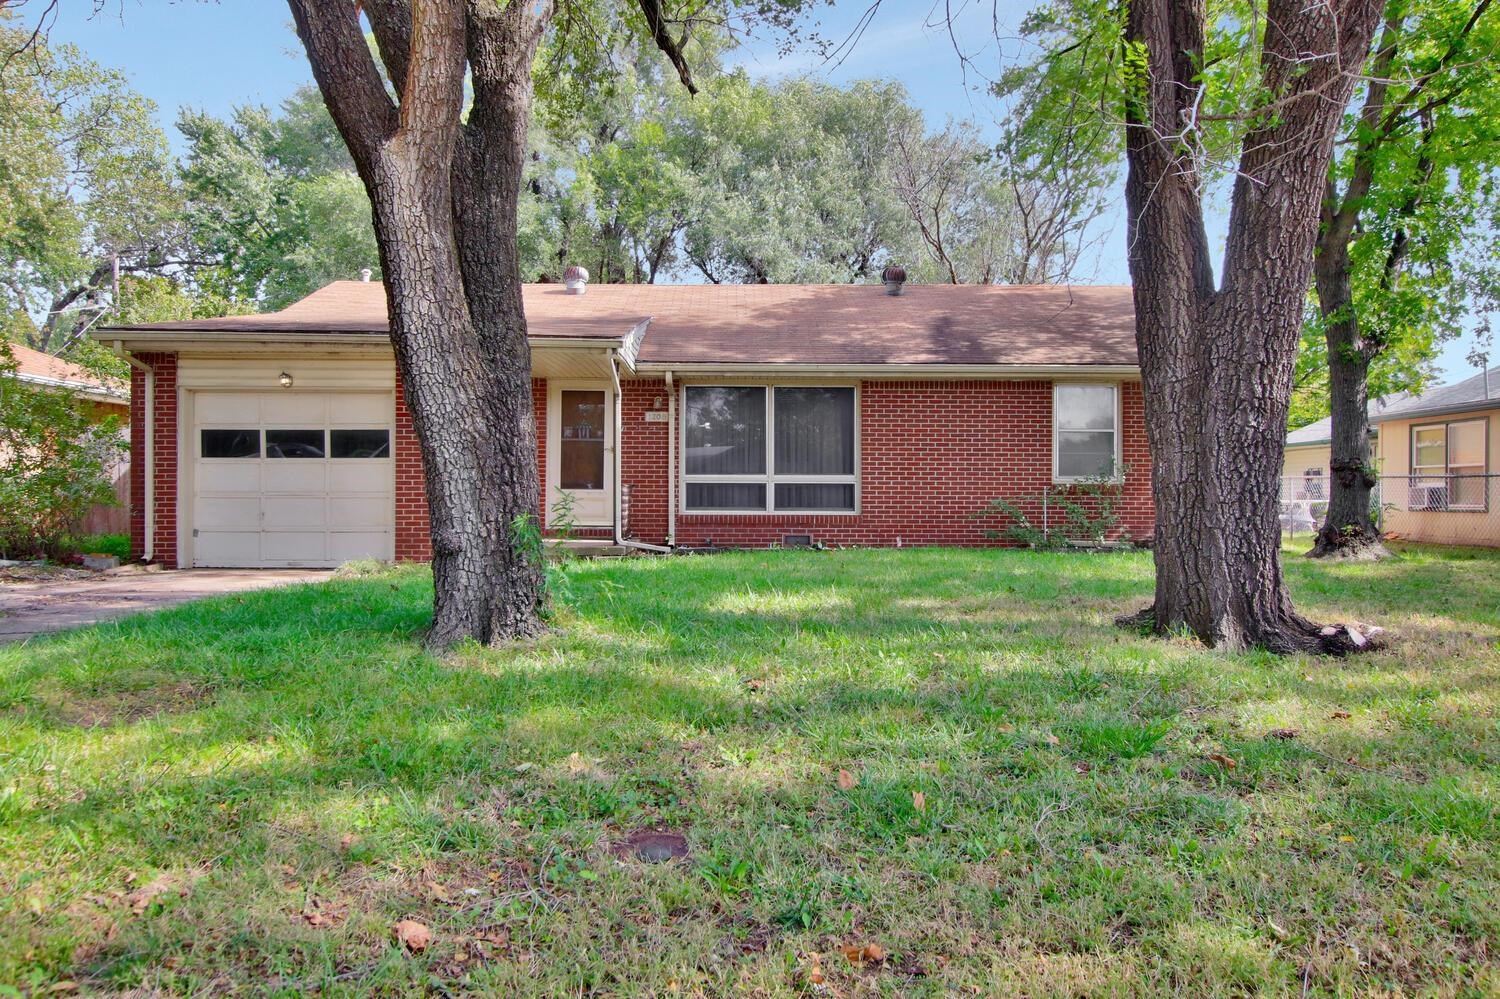 This home offers 3 bedrooms, 1 bath, 1 car attached garage and a large backyard with covered patio.